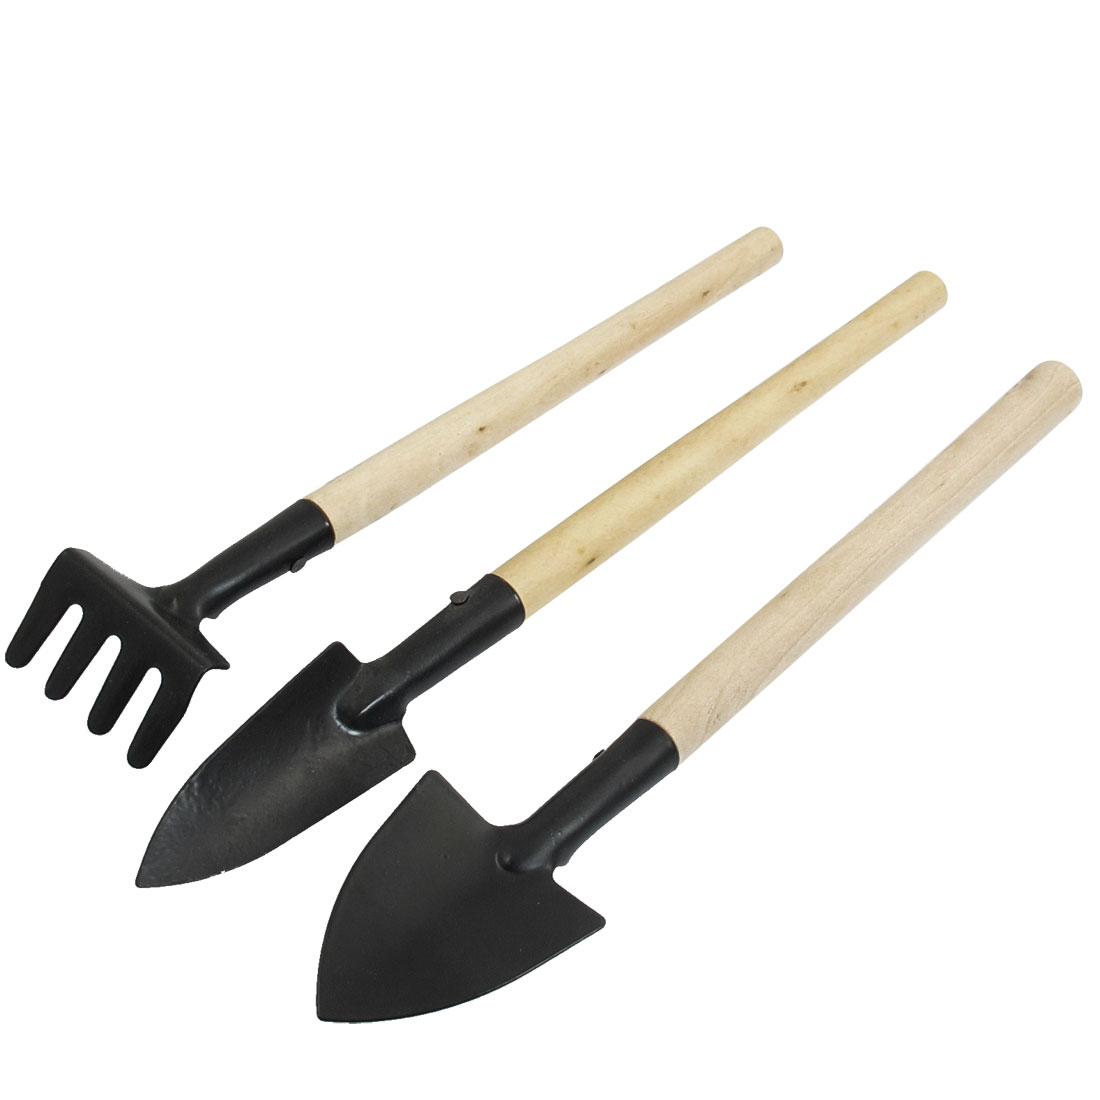 Beige Woode Handle Black Trowel Rake Shovel Garden Tools Set